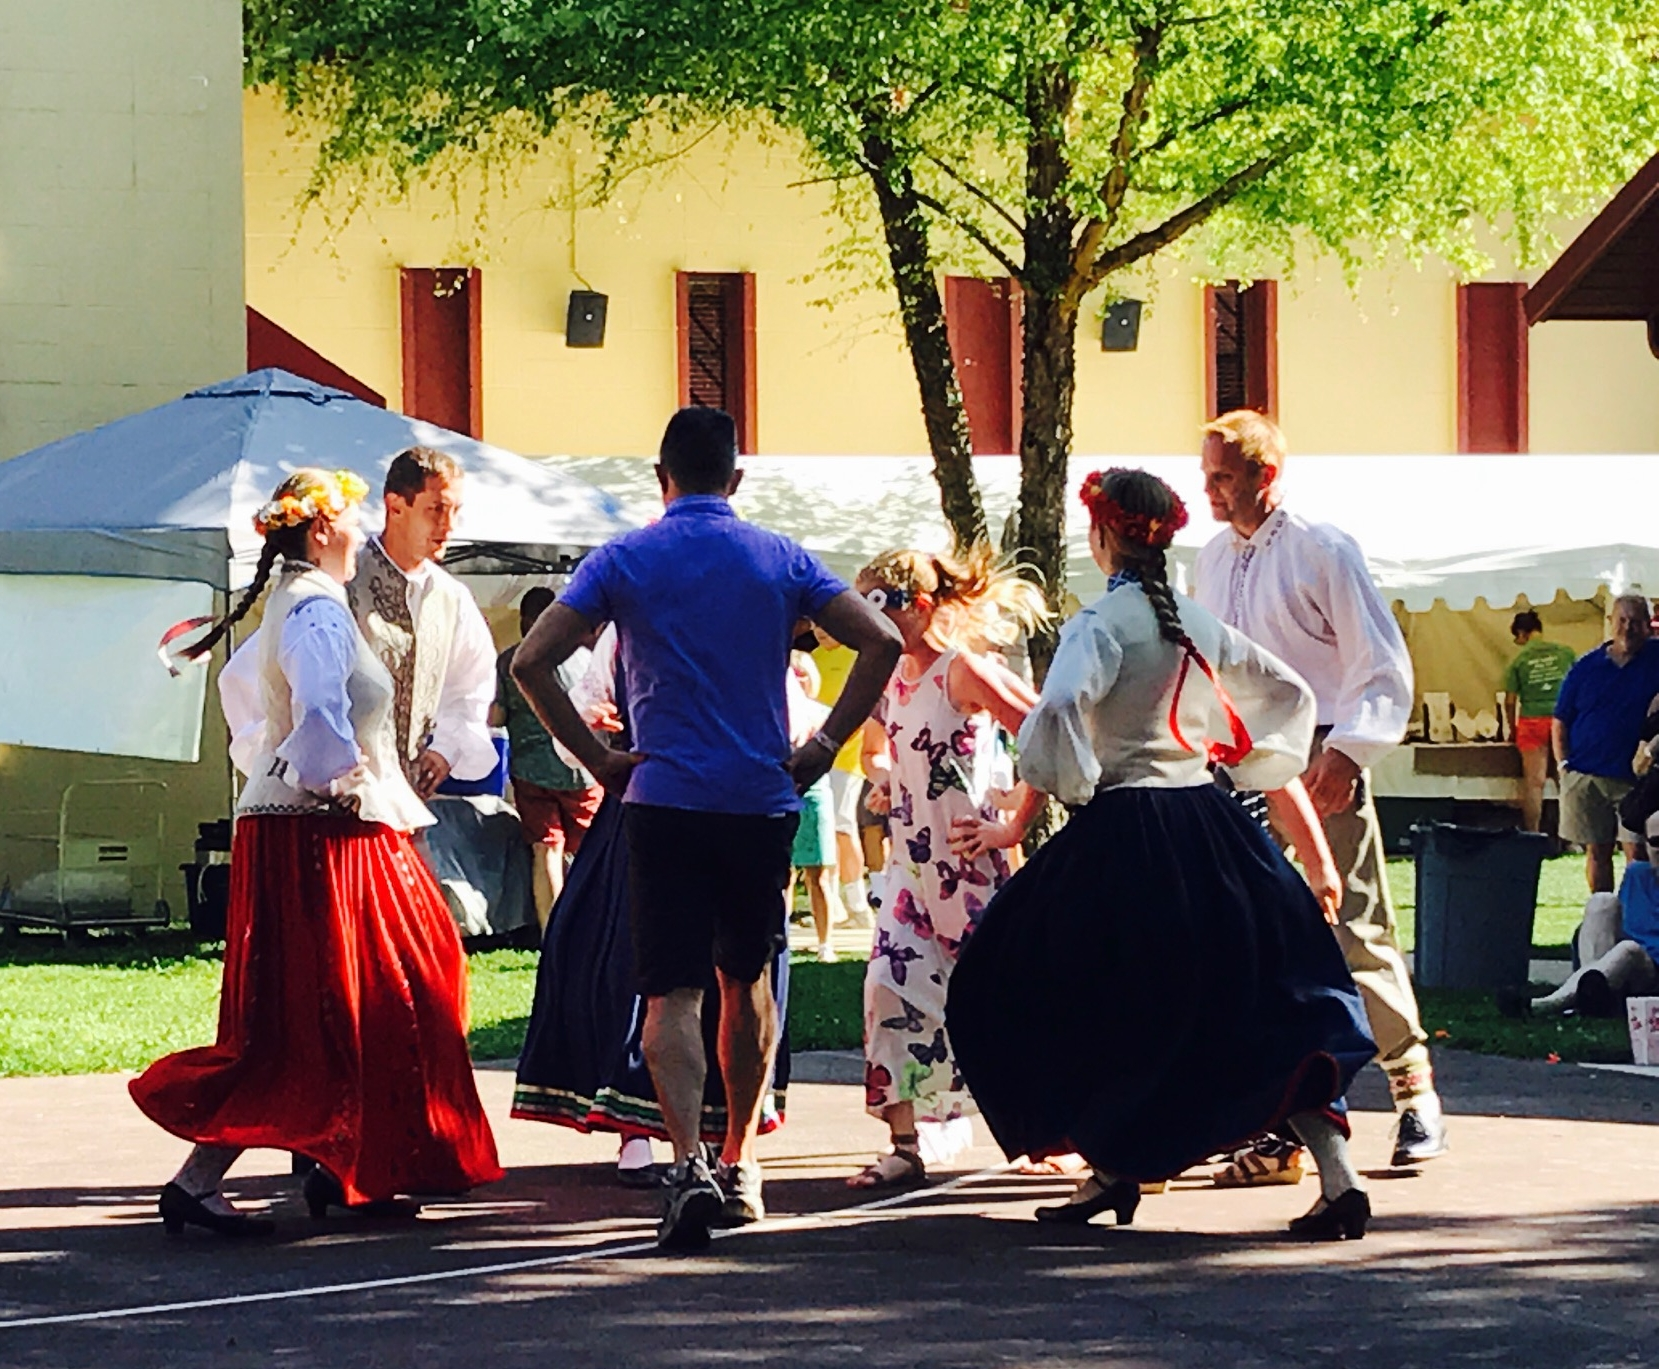 John (without traditional Latvian attire) dancing with Emi at the Latvian Festival